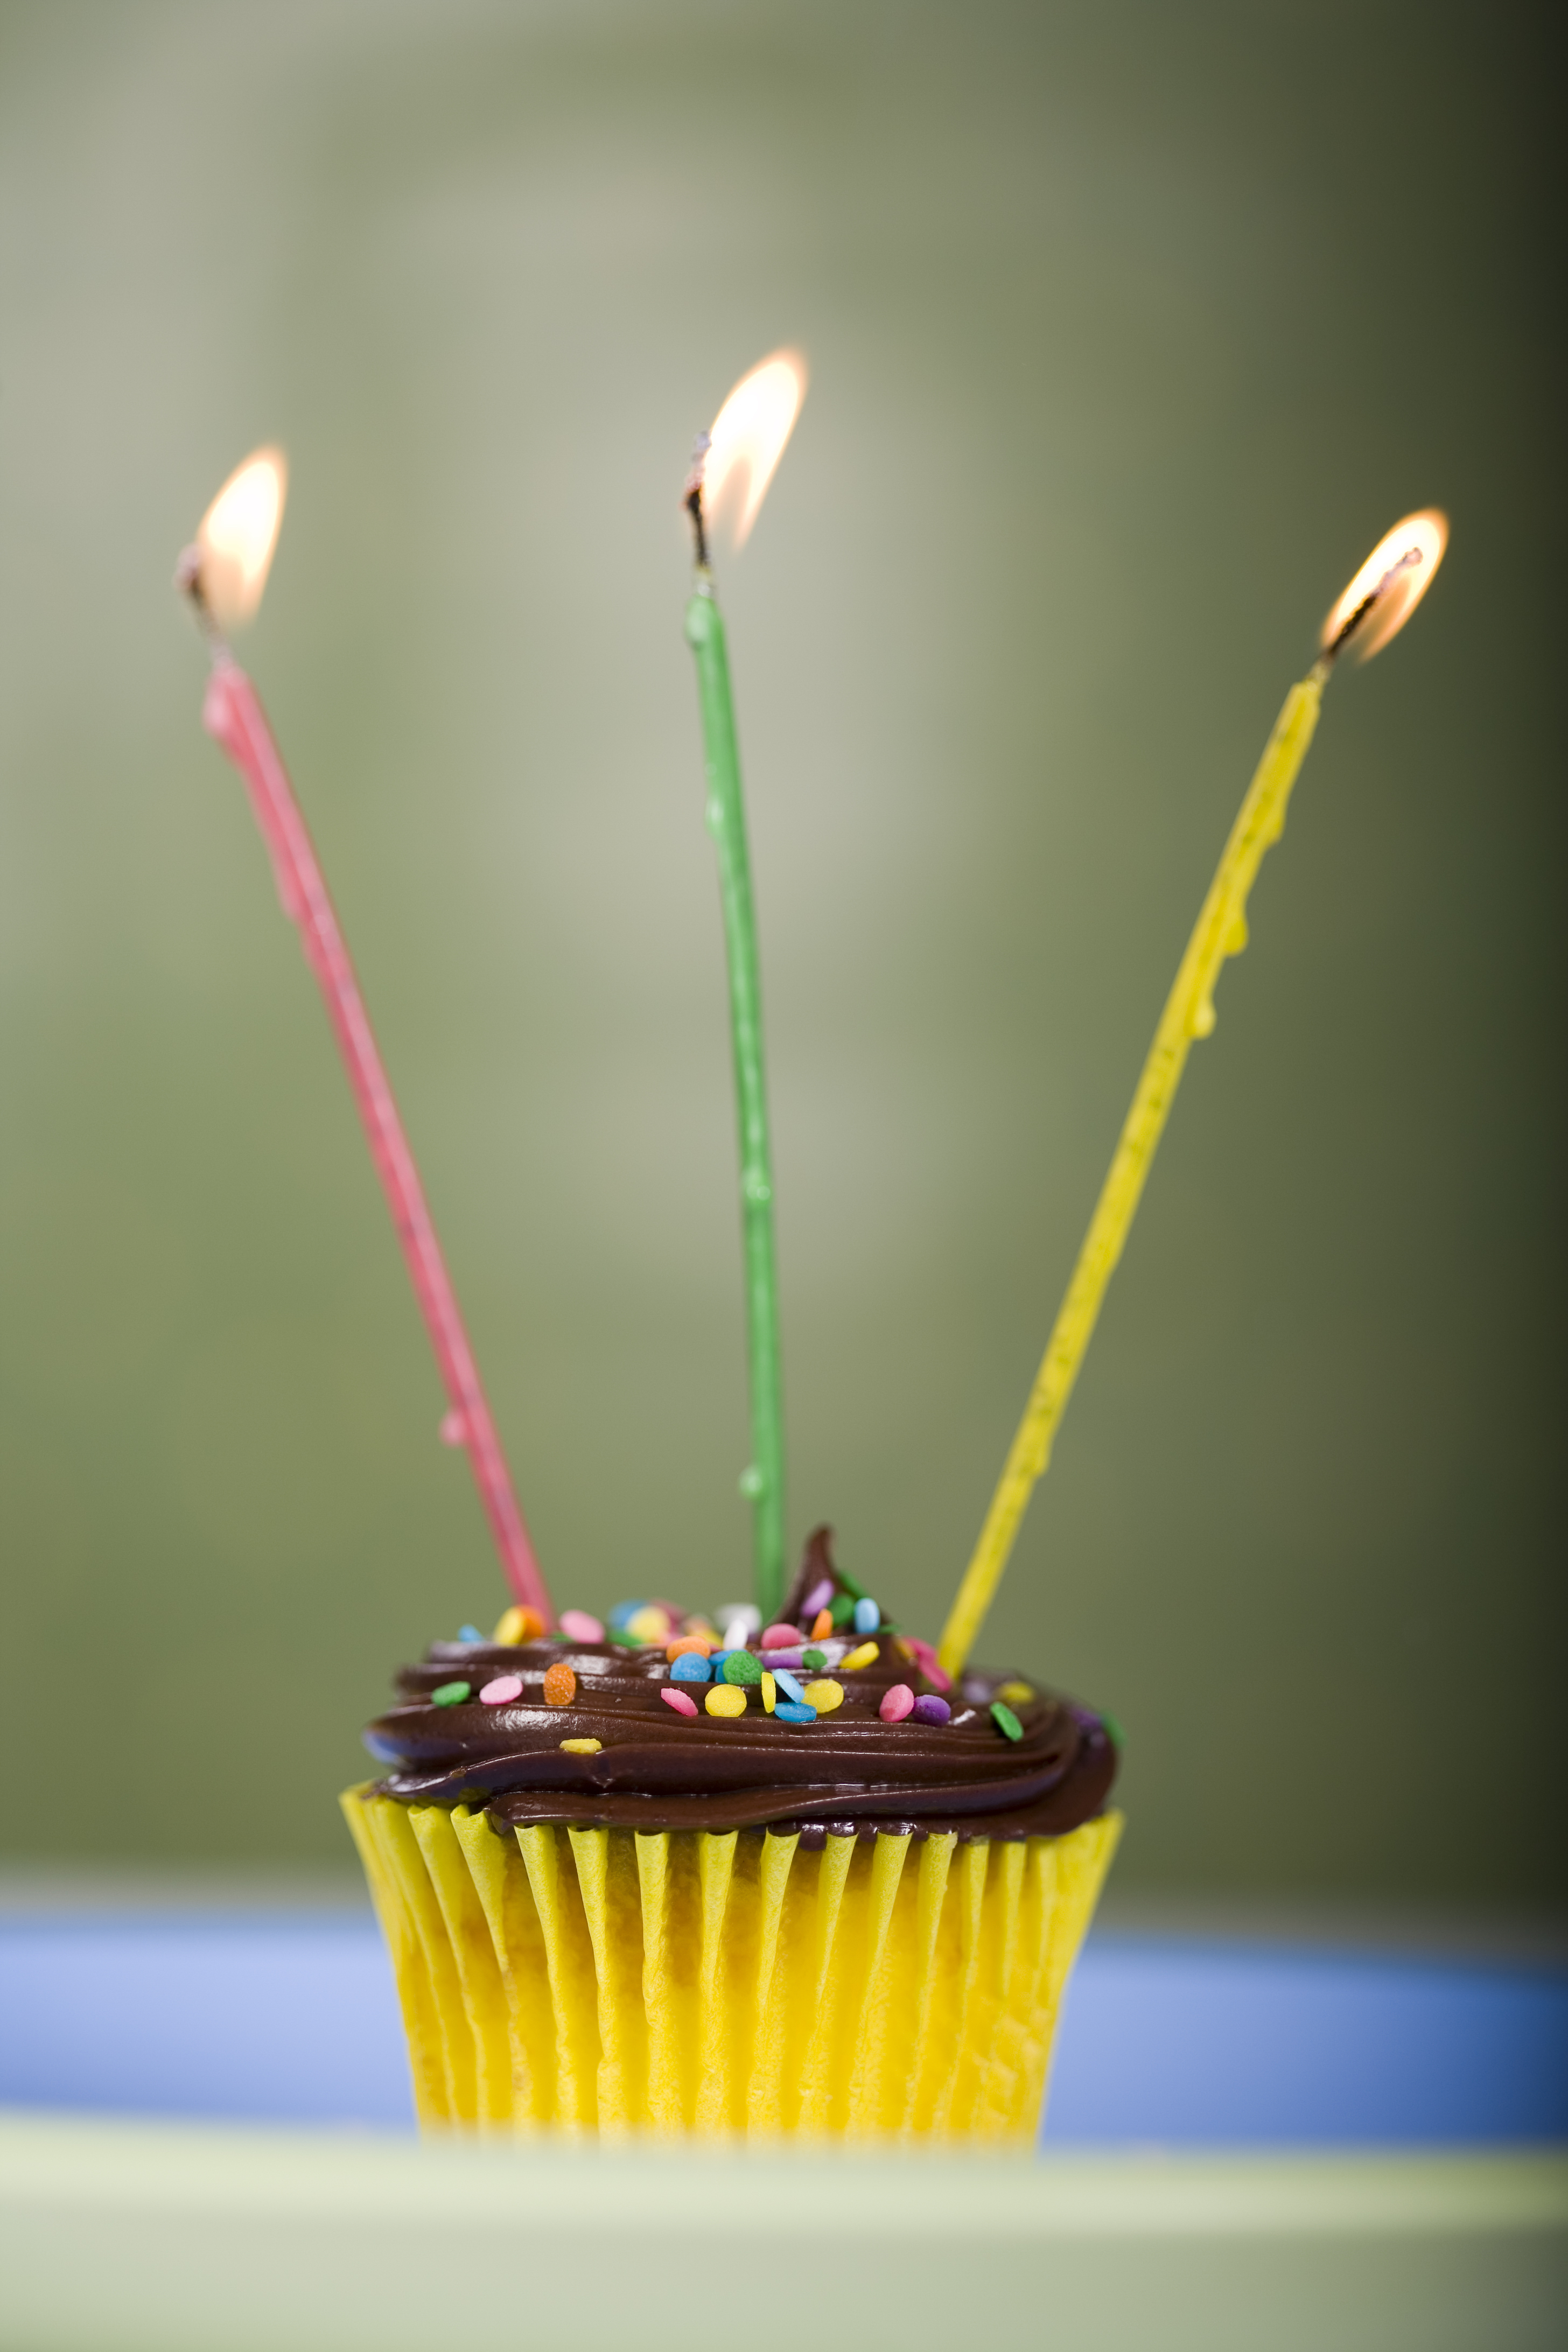 cupcakes with three candles